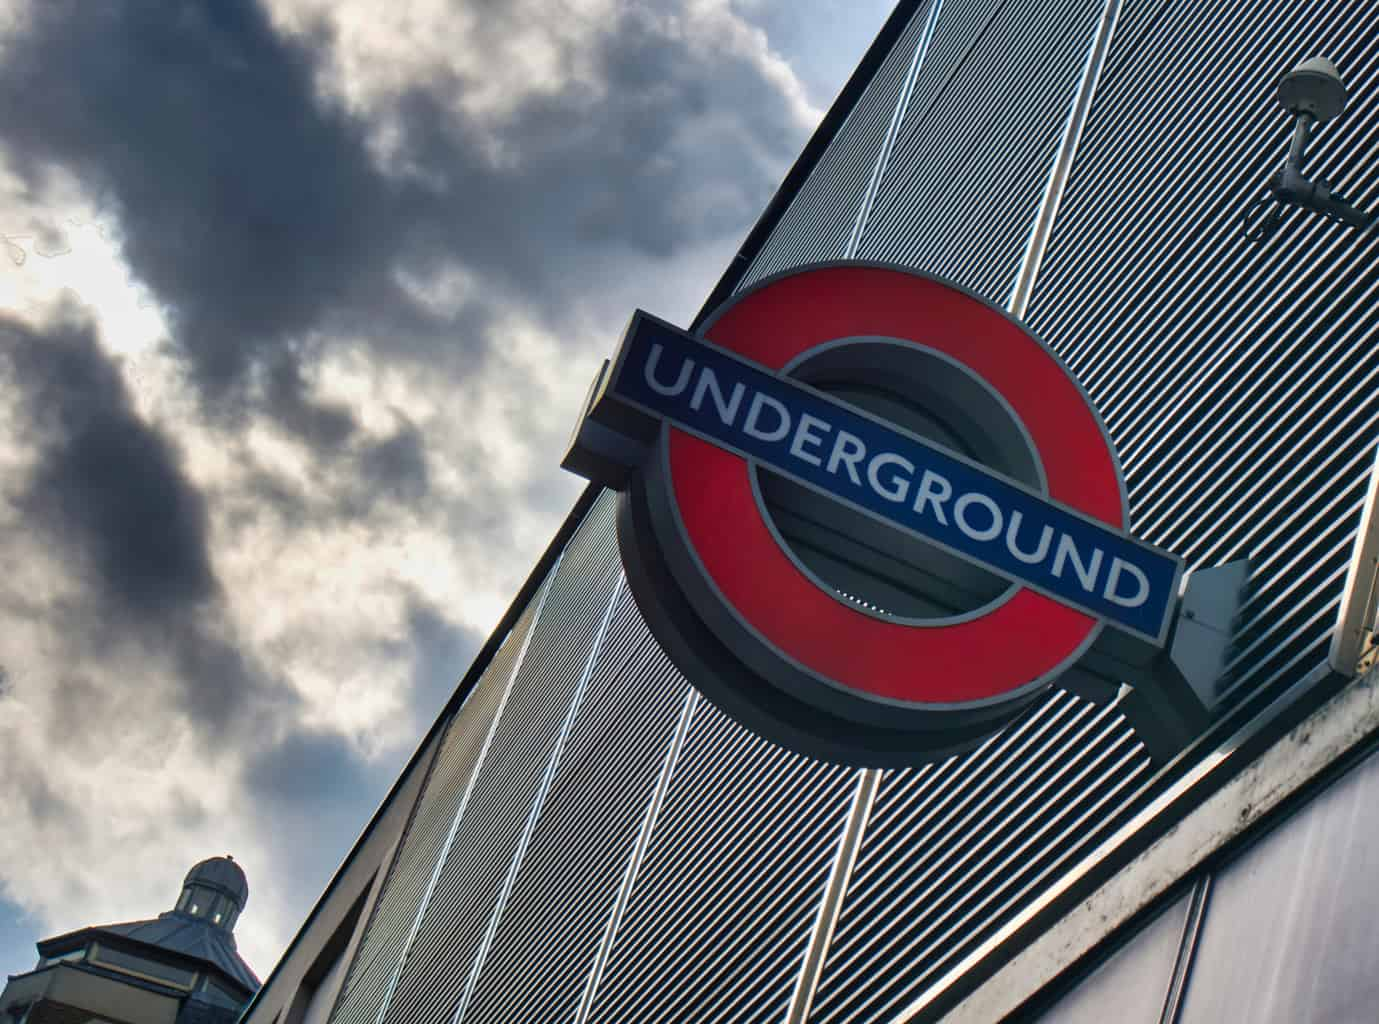 A close shot of a London Undergound sign with ominous clouds behind